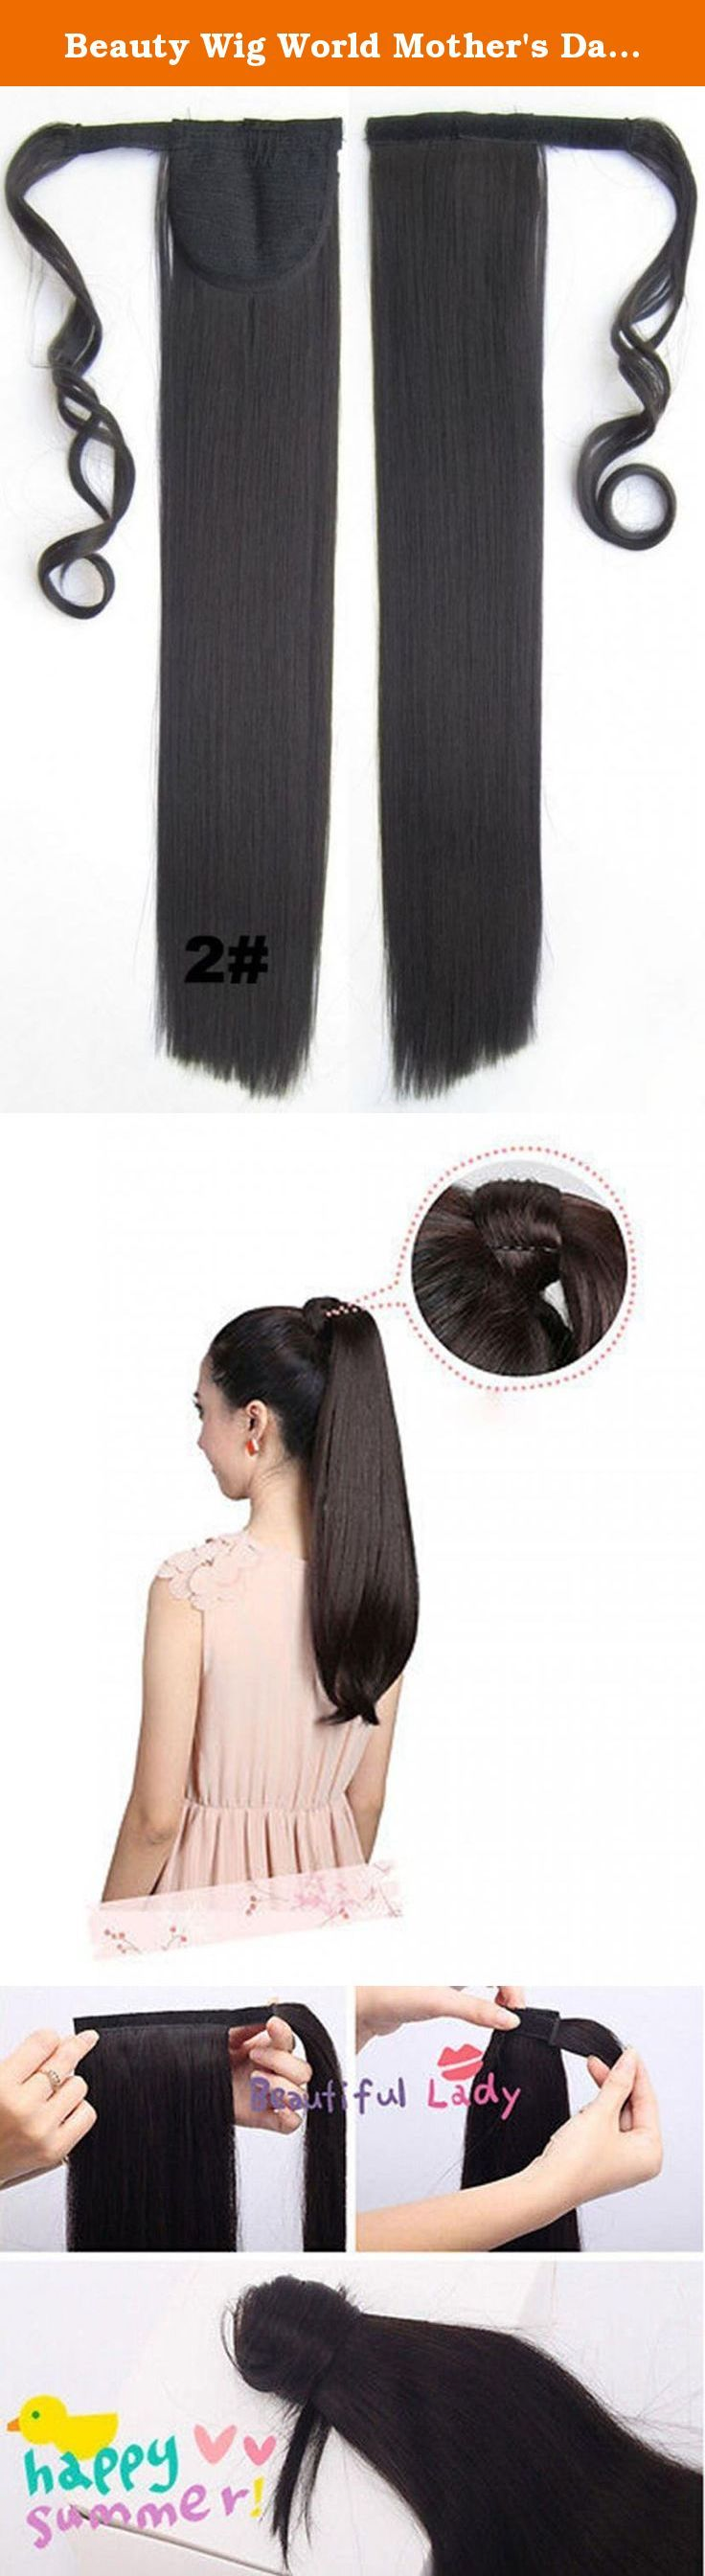 """Beauty Wig World Mother's Day Gift 22""""/55cm 90g Straight Clip In/on Wrap Around Ponytail Extension for Women Big Discount Synthetic Hairpiene - #2 Darkest Brown. Wig Care Instruction Washing & Care - Soak it with warm water & conditioner for 10 minutes and rinse the wig thoroughly, then dry it by towel; - Hang up by clips and let it dry in a natural way; - Don't use any form of curling roller, hair straightener or dryers as it is synthetic materials; - No hair spray. Restyling - Comb it…"""